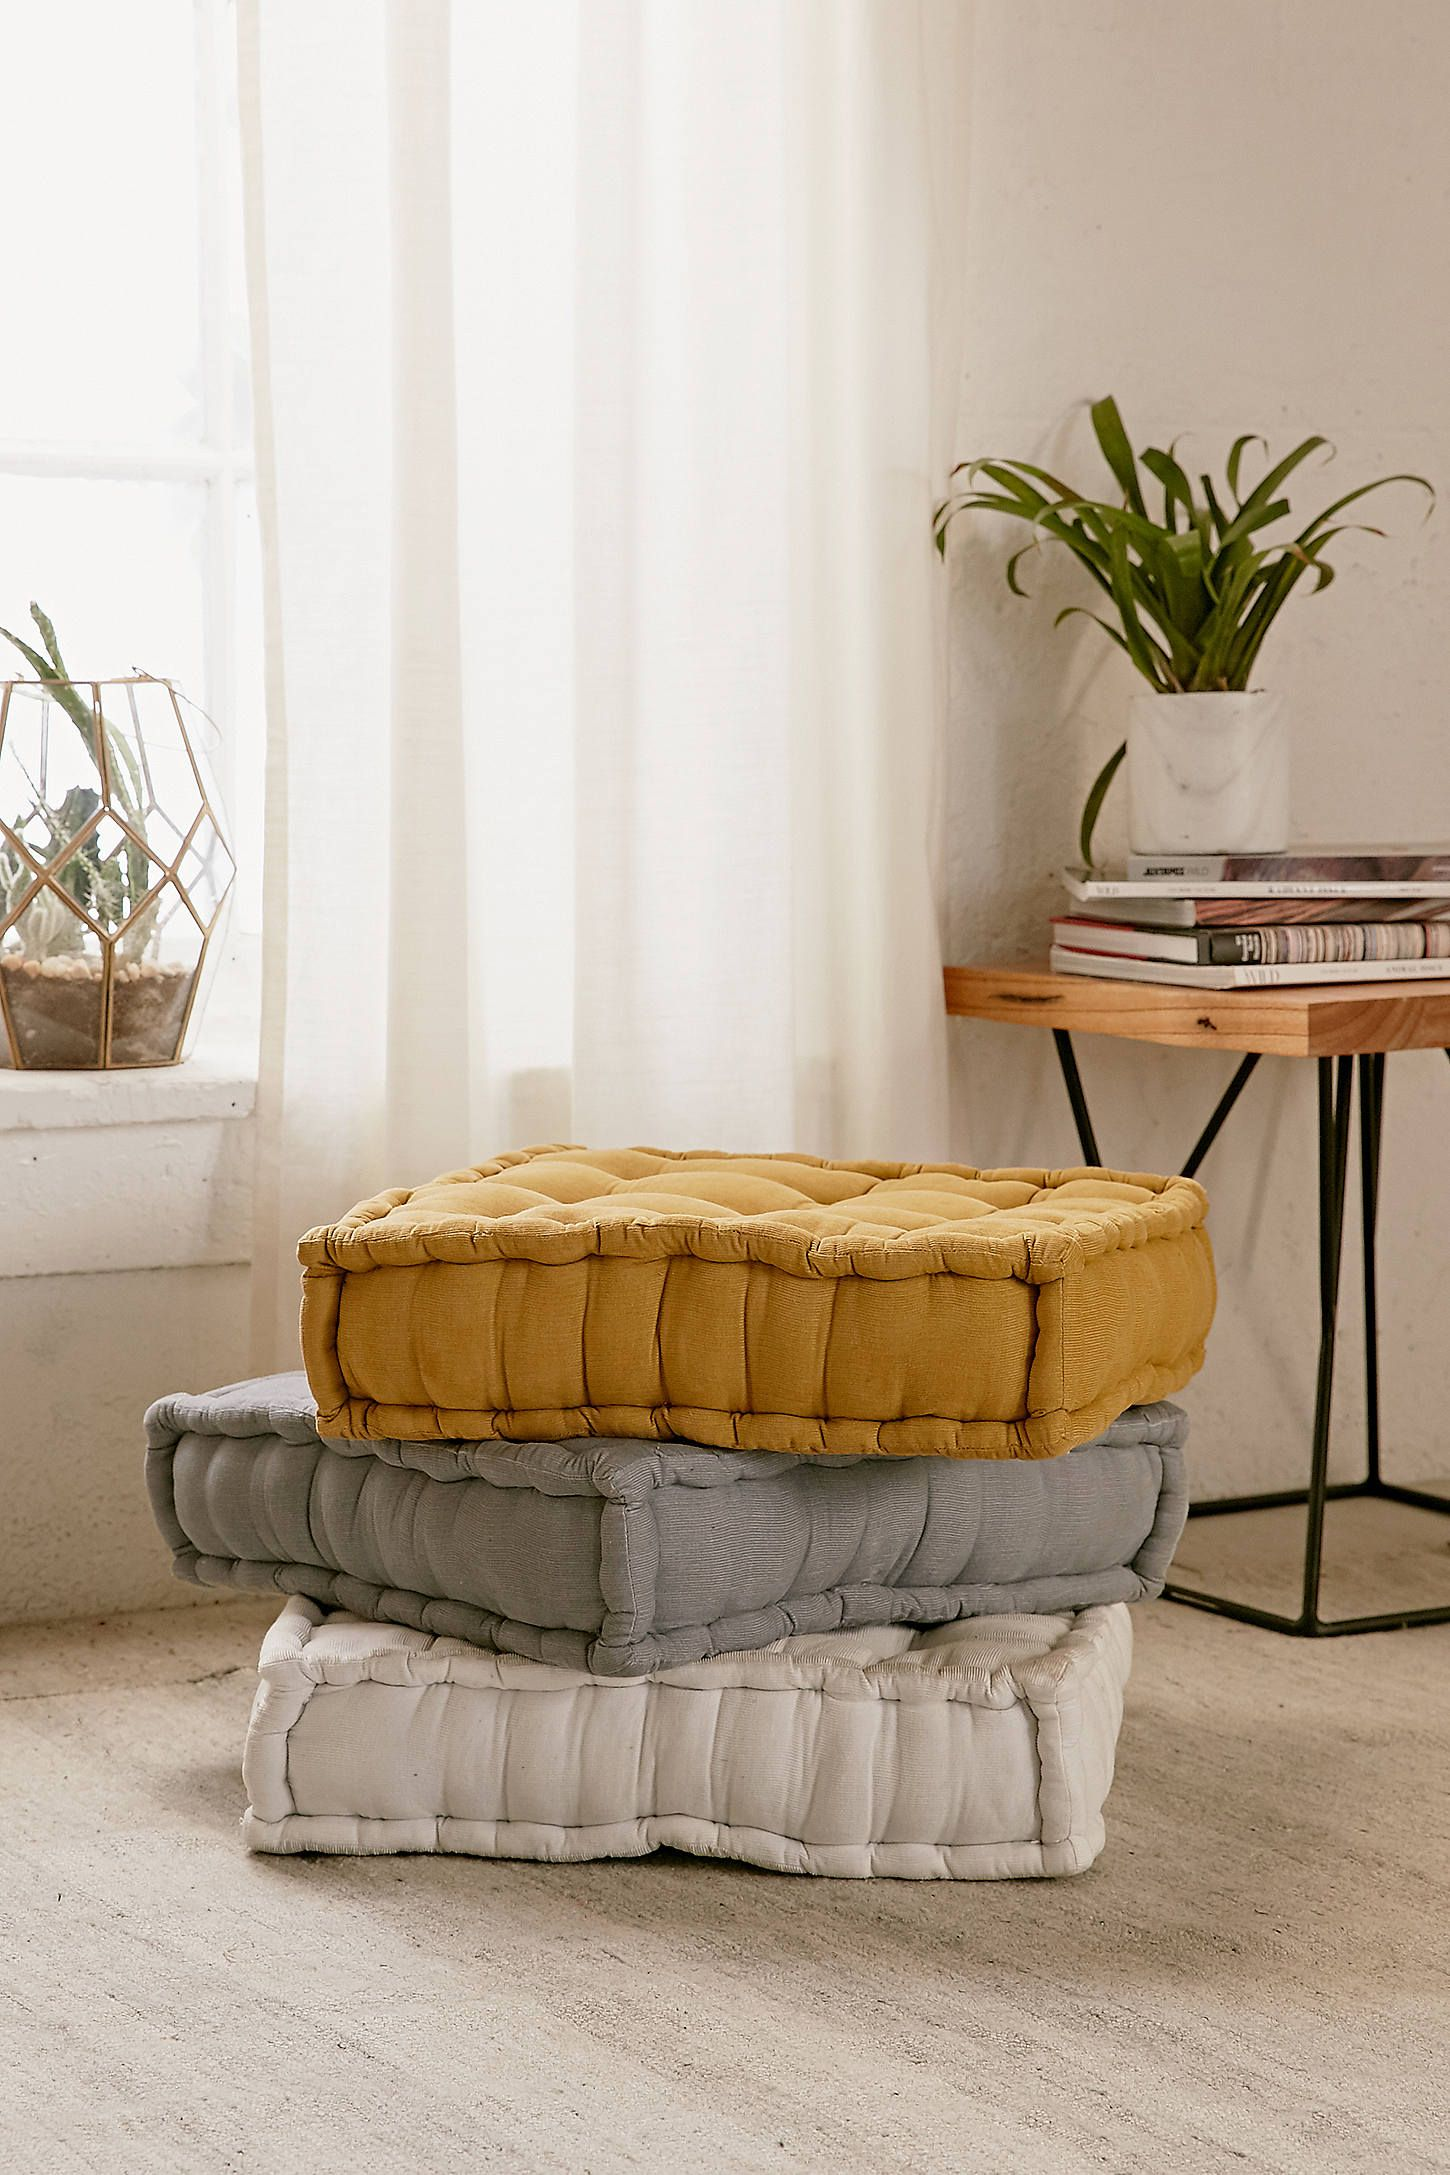 Tufted Corduroy Floor Pillow Floor Seating First Apartment